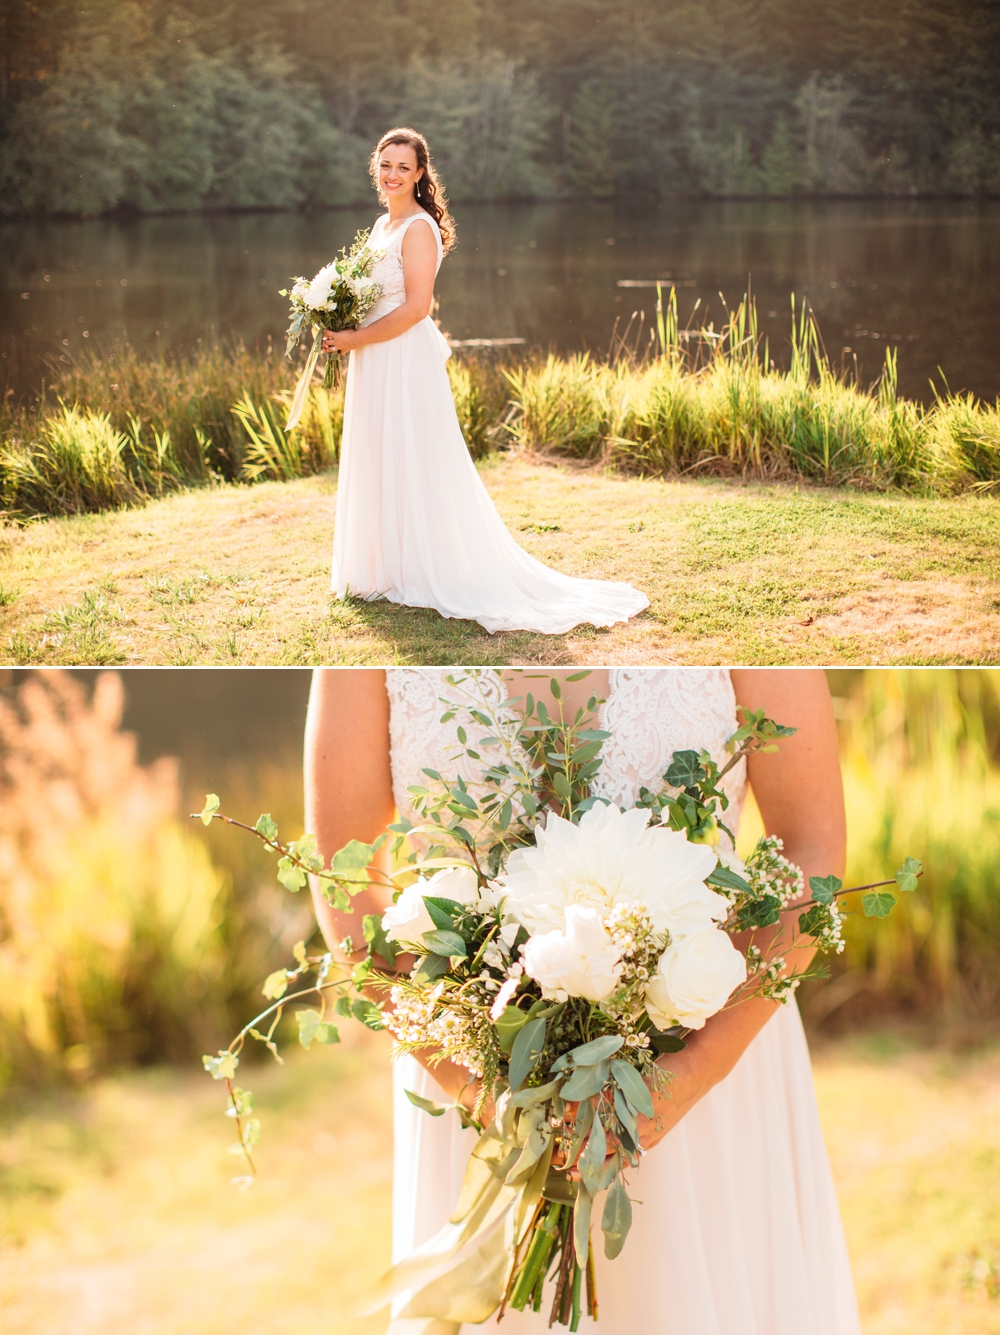 bride-holds-white-bouquet-by-lake